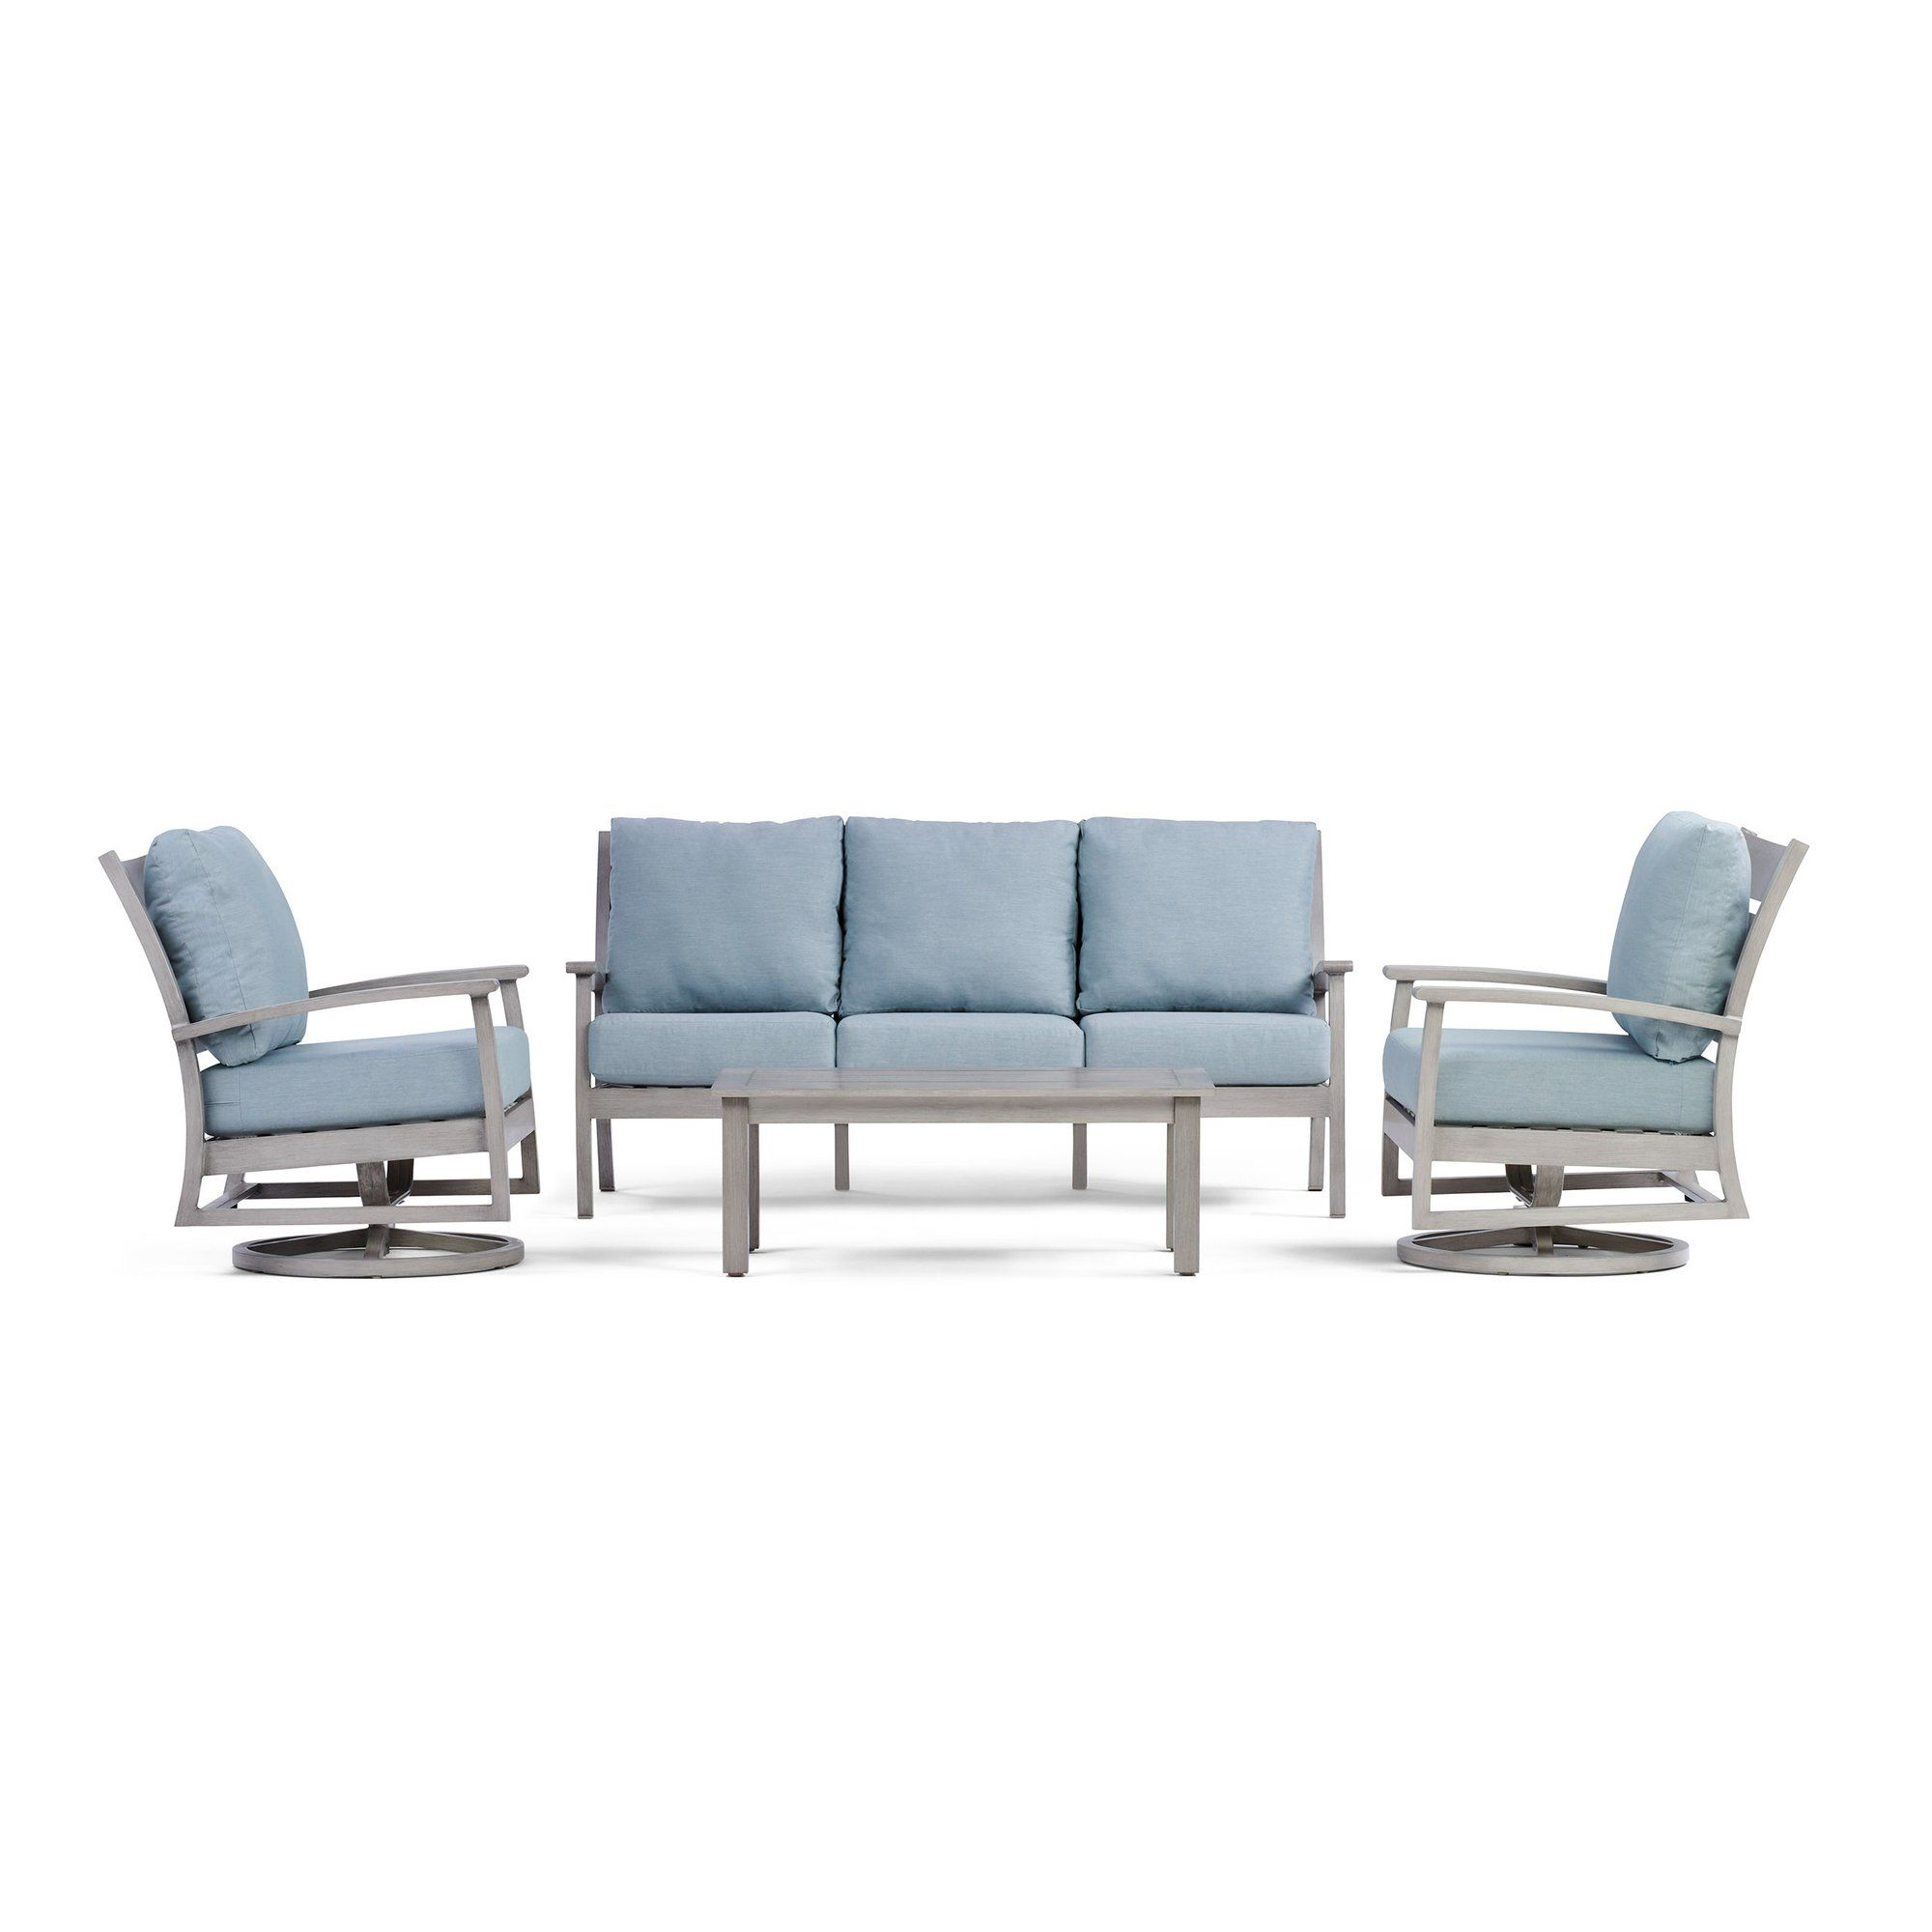 Eden Outdoor Sofa Set with Swivel Rocking Chairs Outdoor